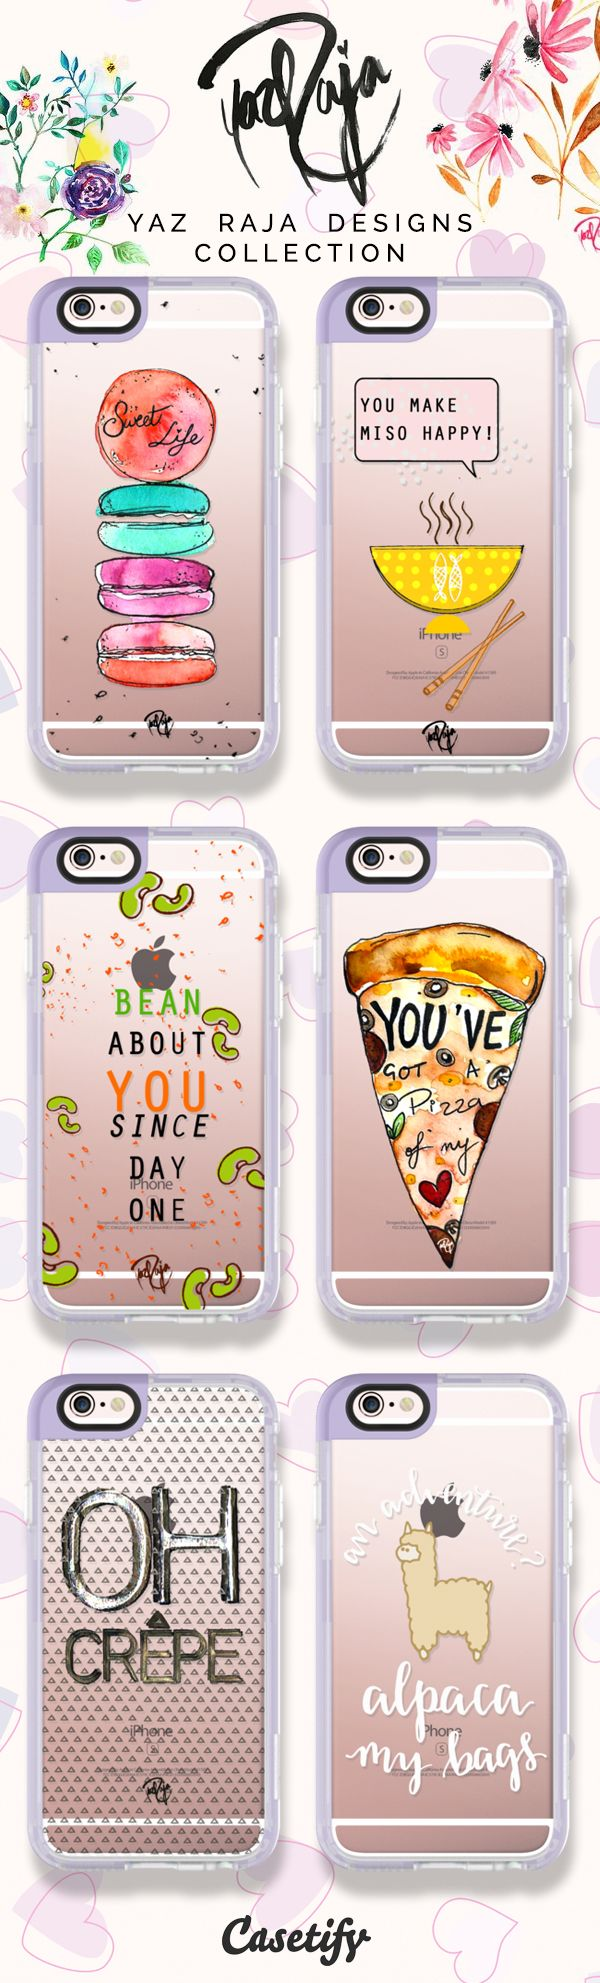 Take a look at these cute cases designed by Yaz Raja Designs now!  https://www.casetify.com/yazrajadesigns/collection | @casetify